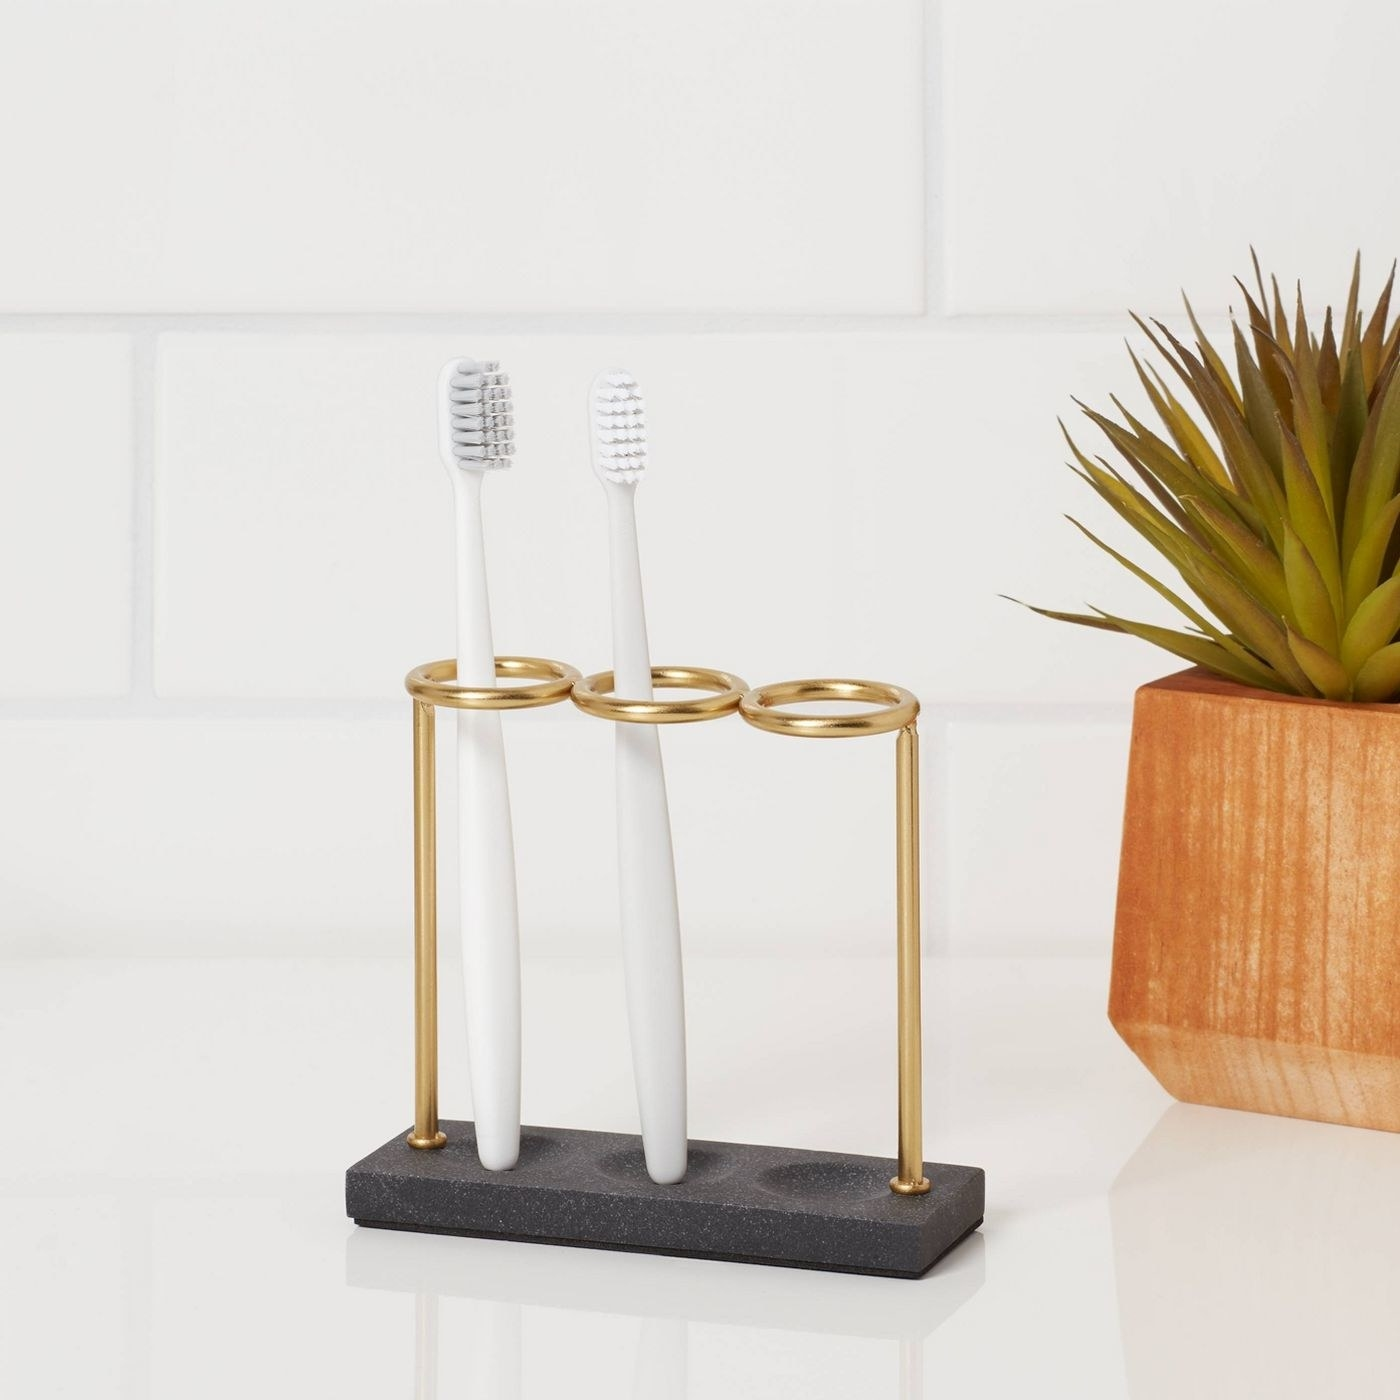 a gold three-toothbrush holder with a black base